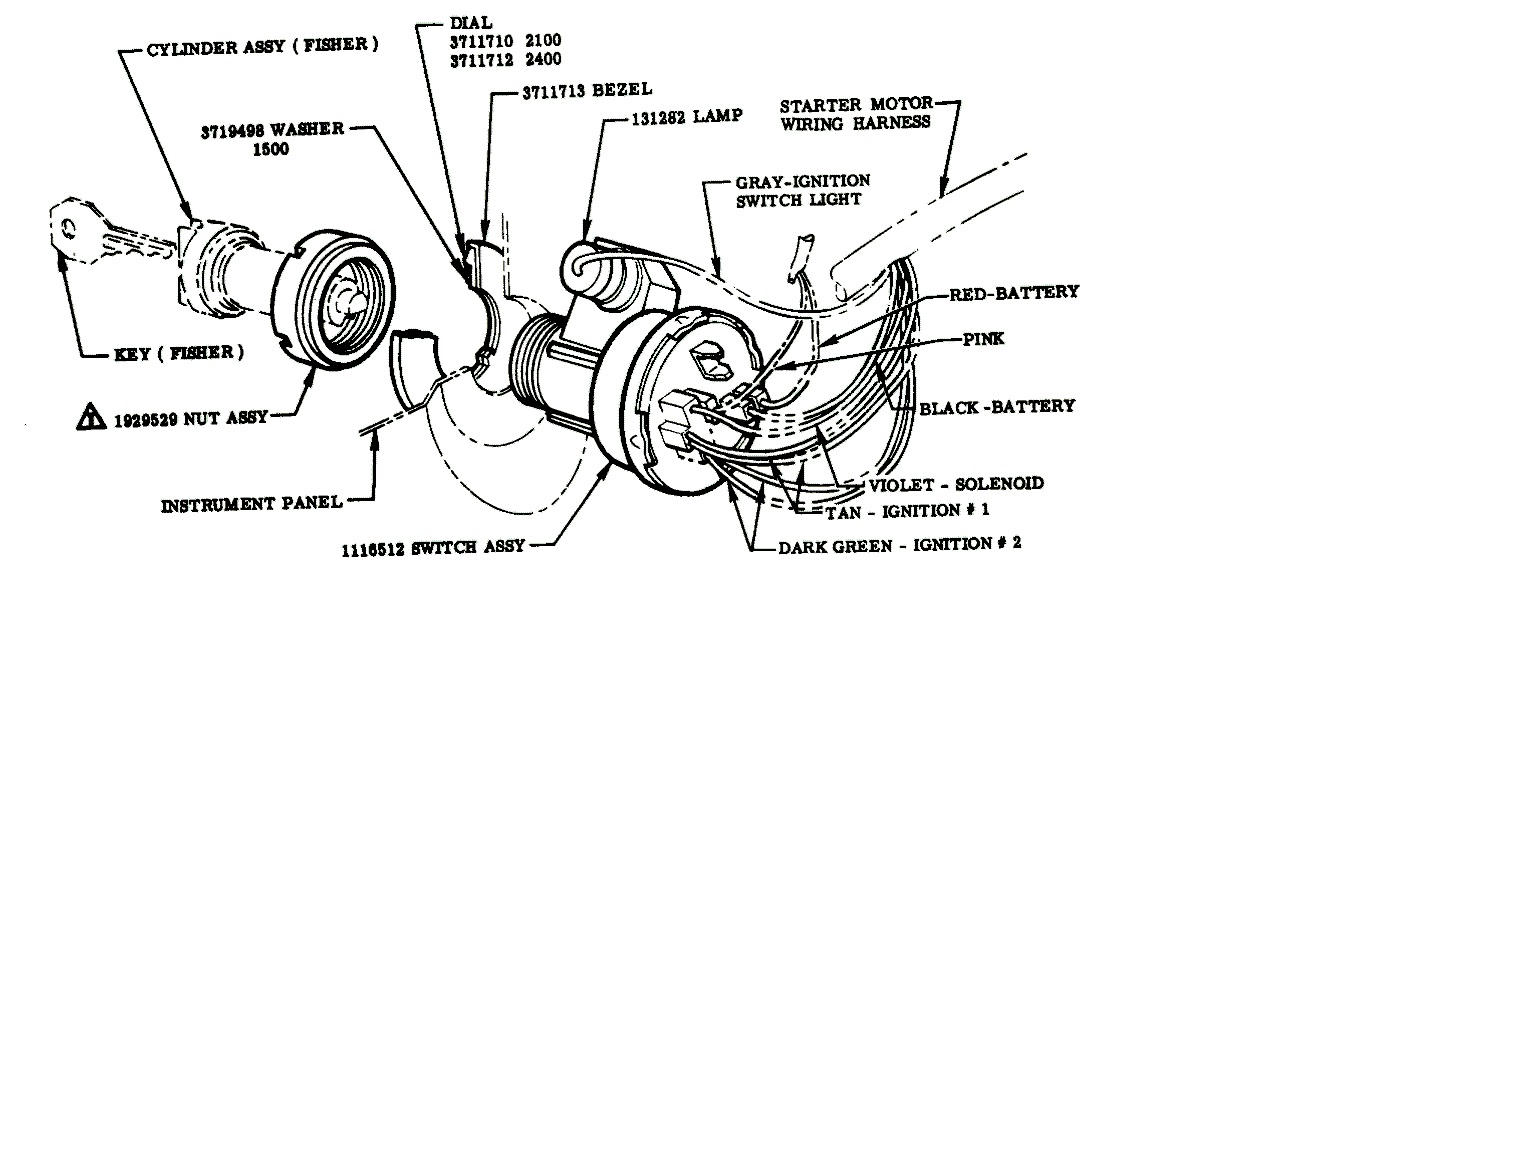 ford hei distributor wiring diagram ford ignition coil diagram wiring diagram for chevy hei distributor at eliteediting.co